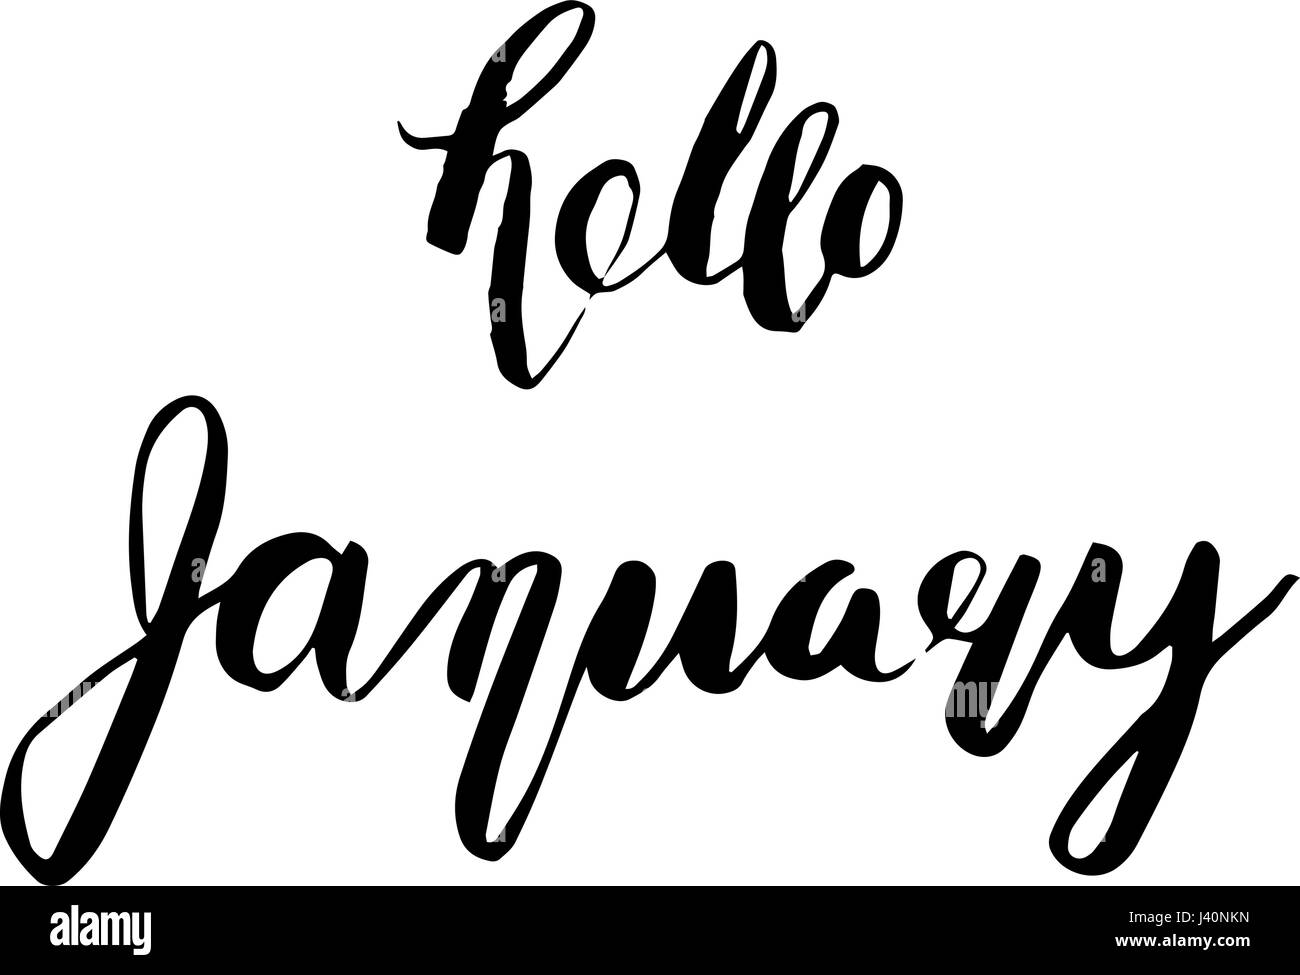 Hello January. Ink hand lettering. Modern brush calligraphy. Inspiration graphic design typography element. - Stock Vector